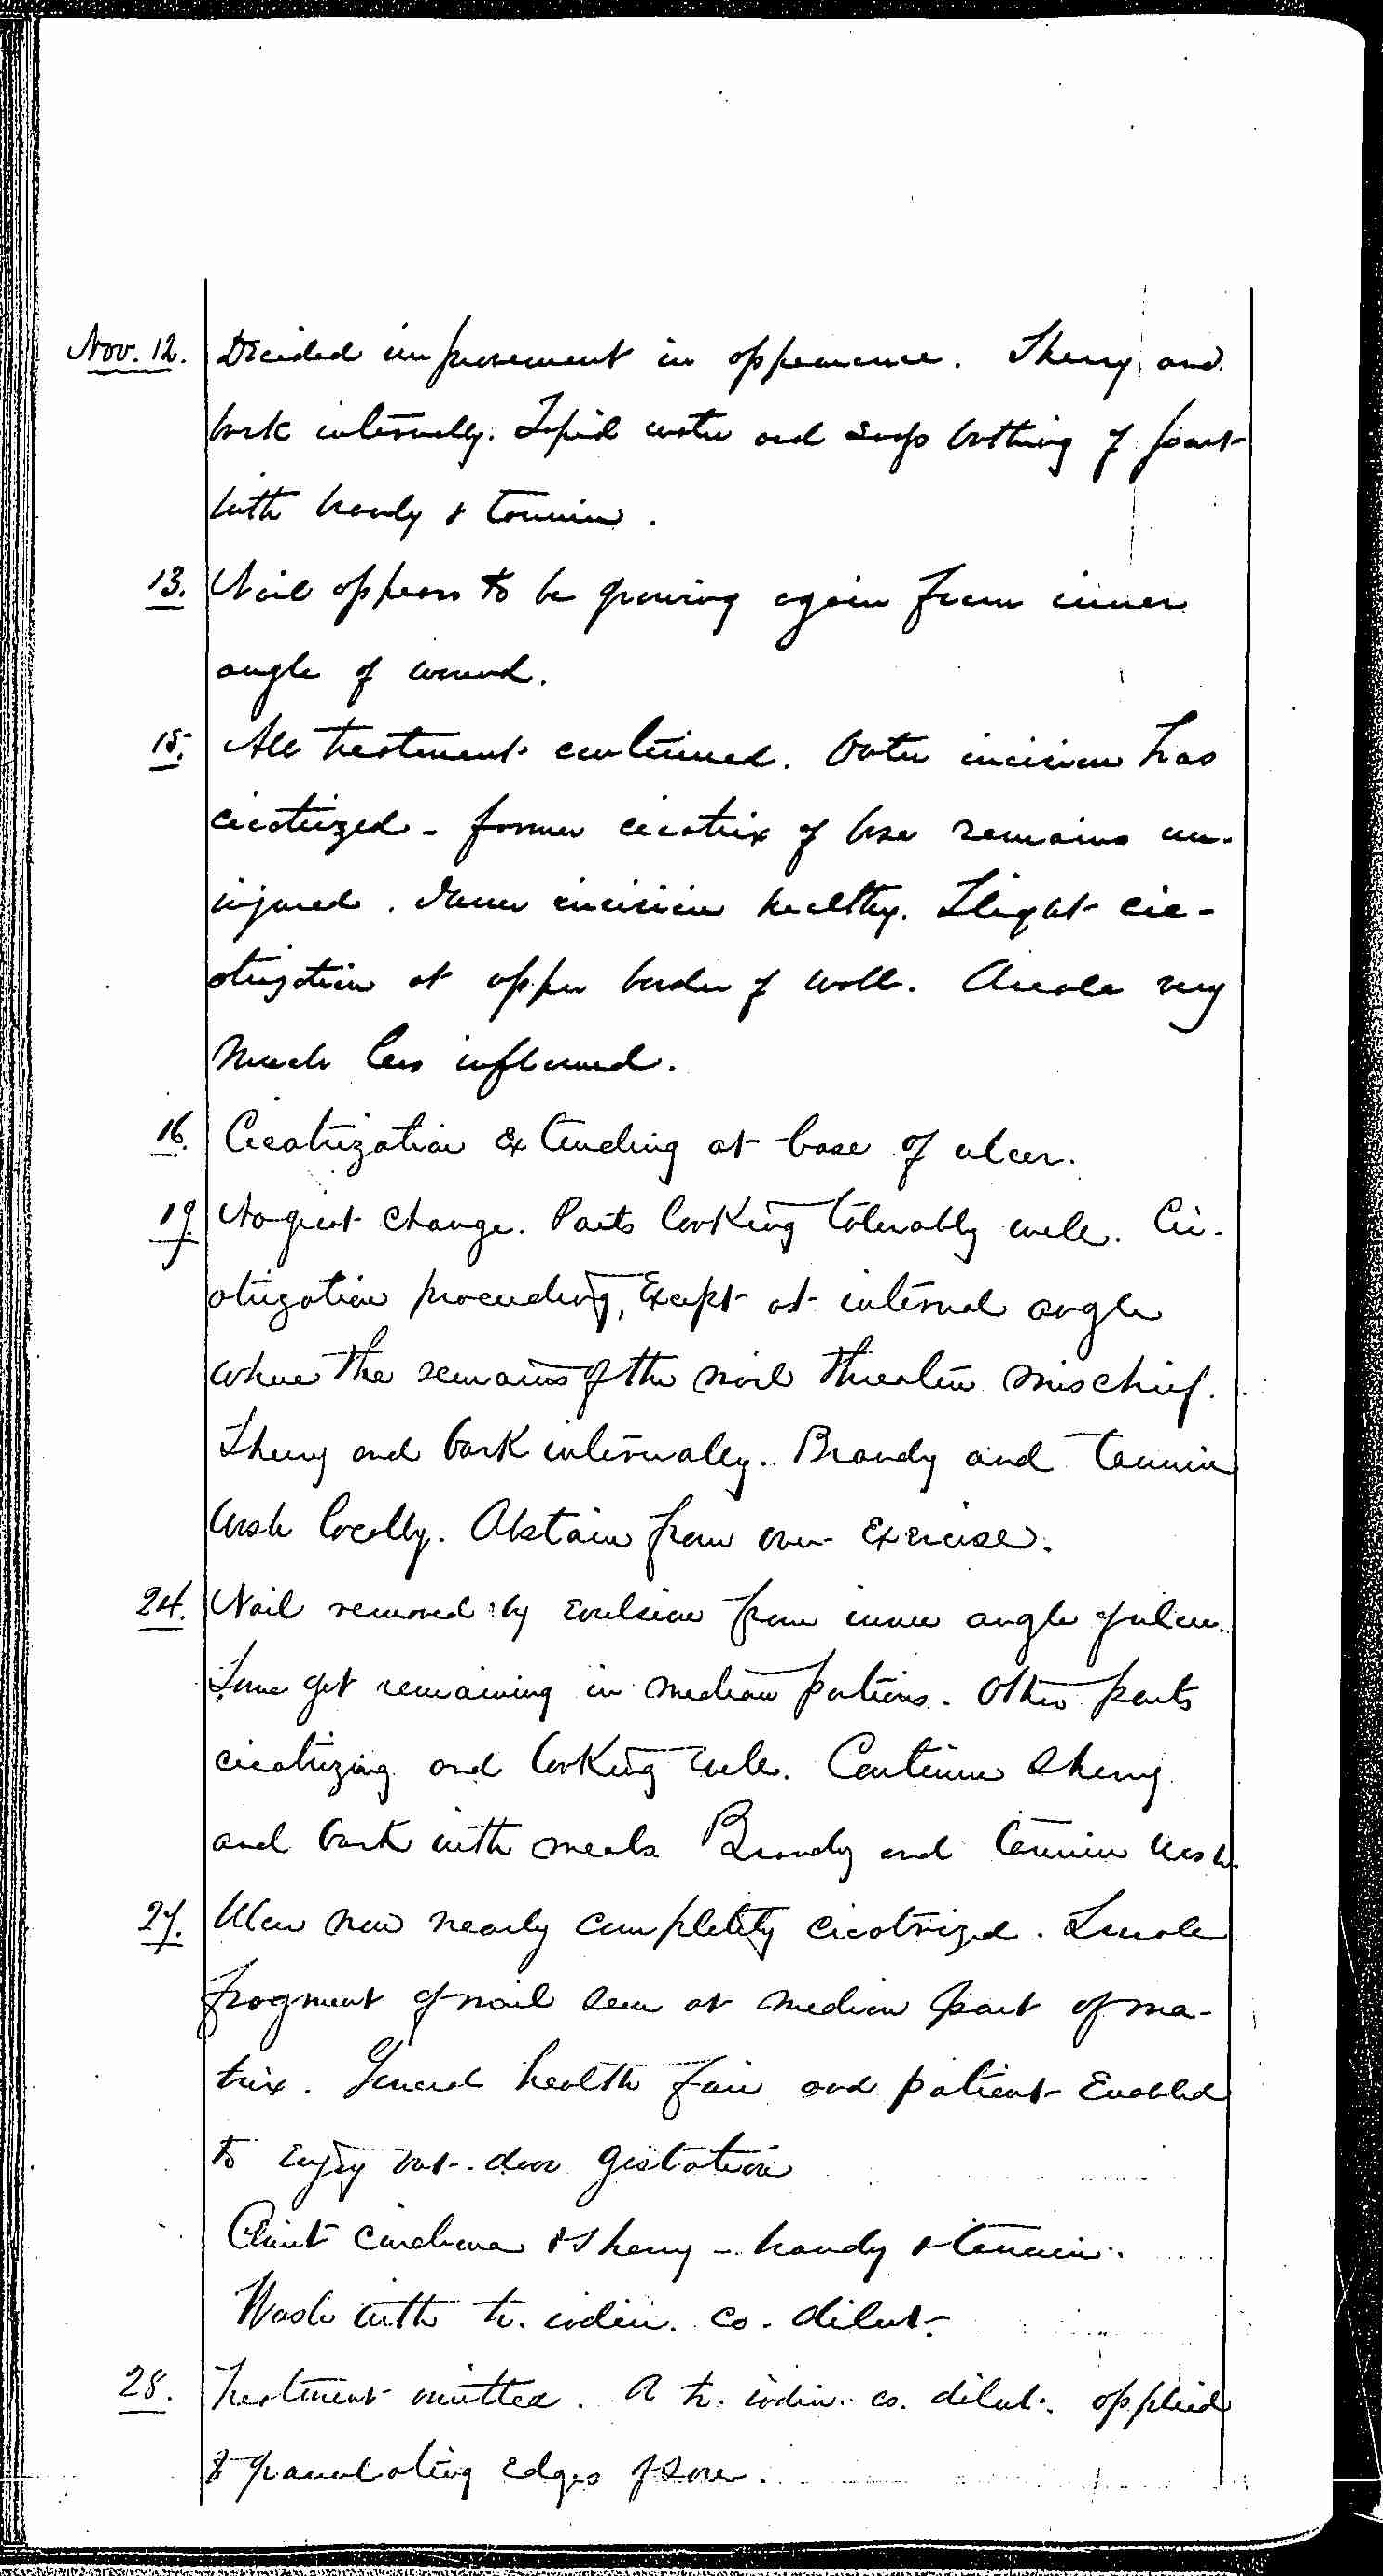 Entry for Robert S. Anderson (page 6 of 15) in the log Hospital Tickets and Case Papers - Naval Hospital - Washington, D.C. - 1868-69